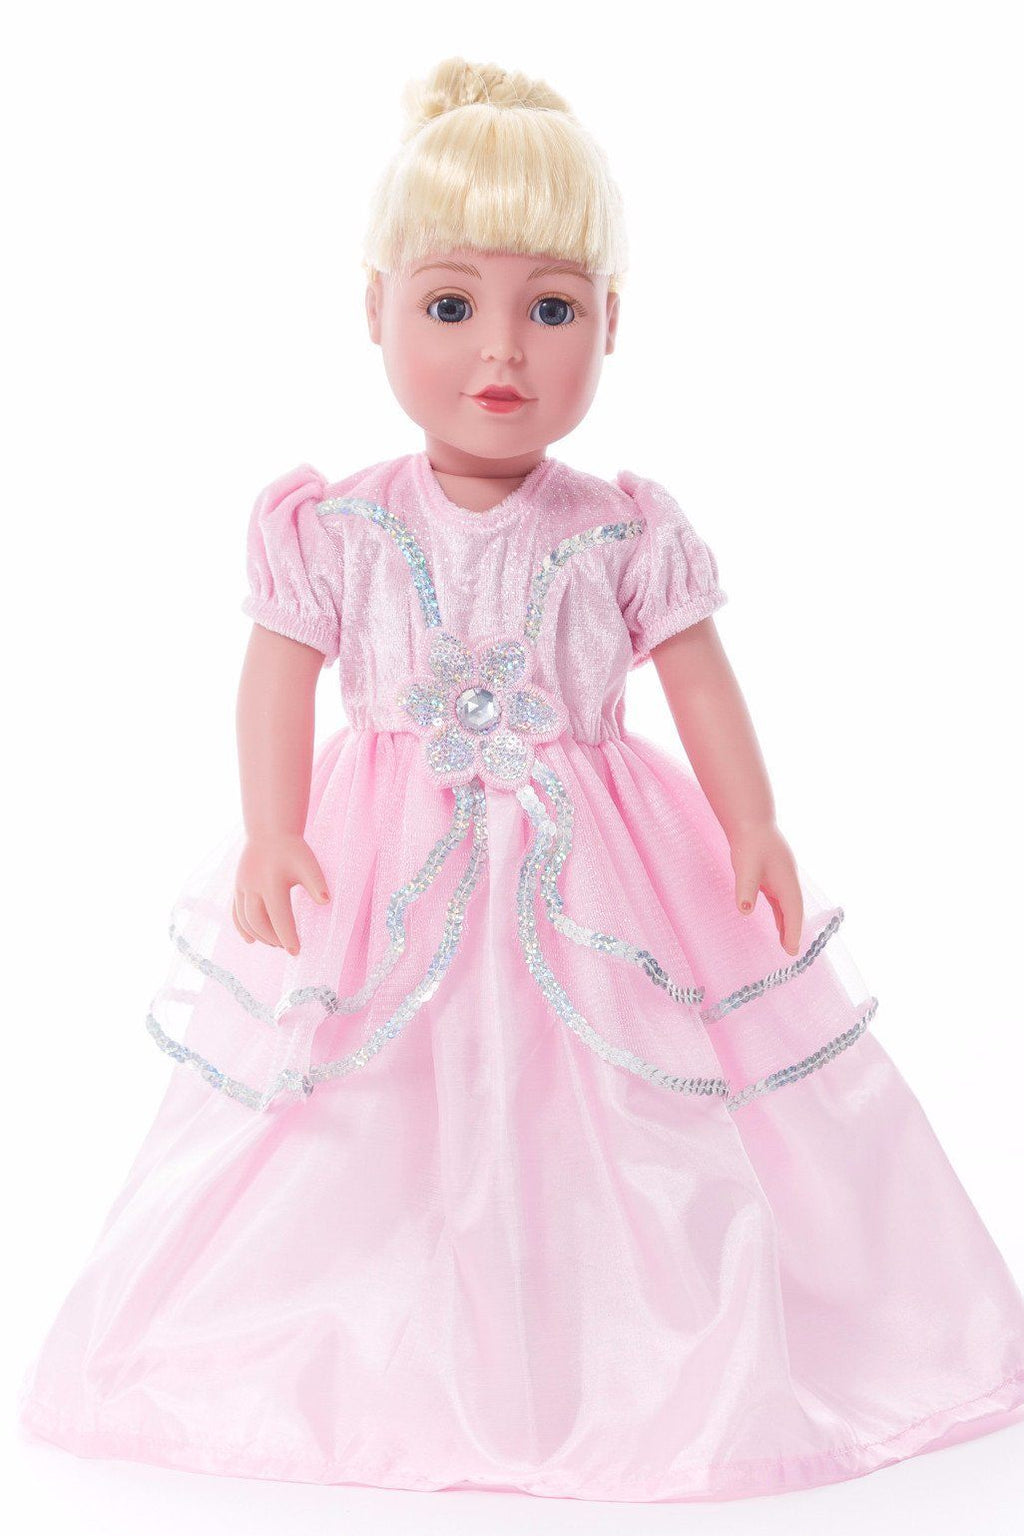 Doll Dresses & Accessories - Doll Dress Royal Pink Princess